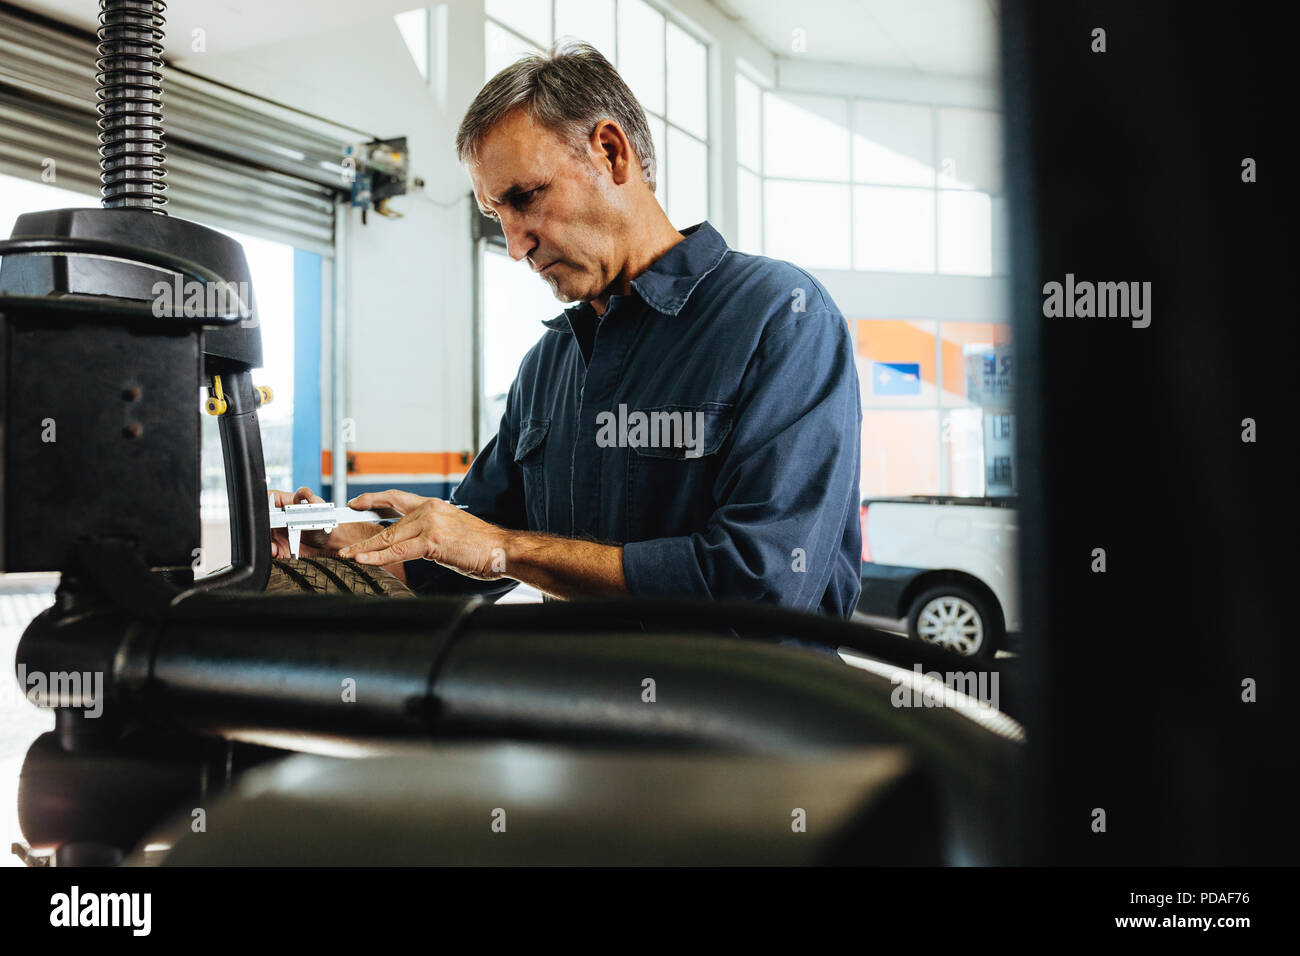 Mechanic checking the car wheel surface on machine. Technician working in automobile tyre mounted on machine in garage. Stock Photo